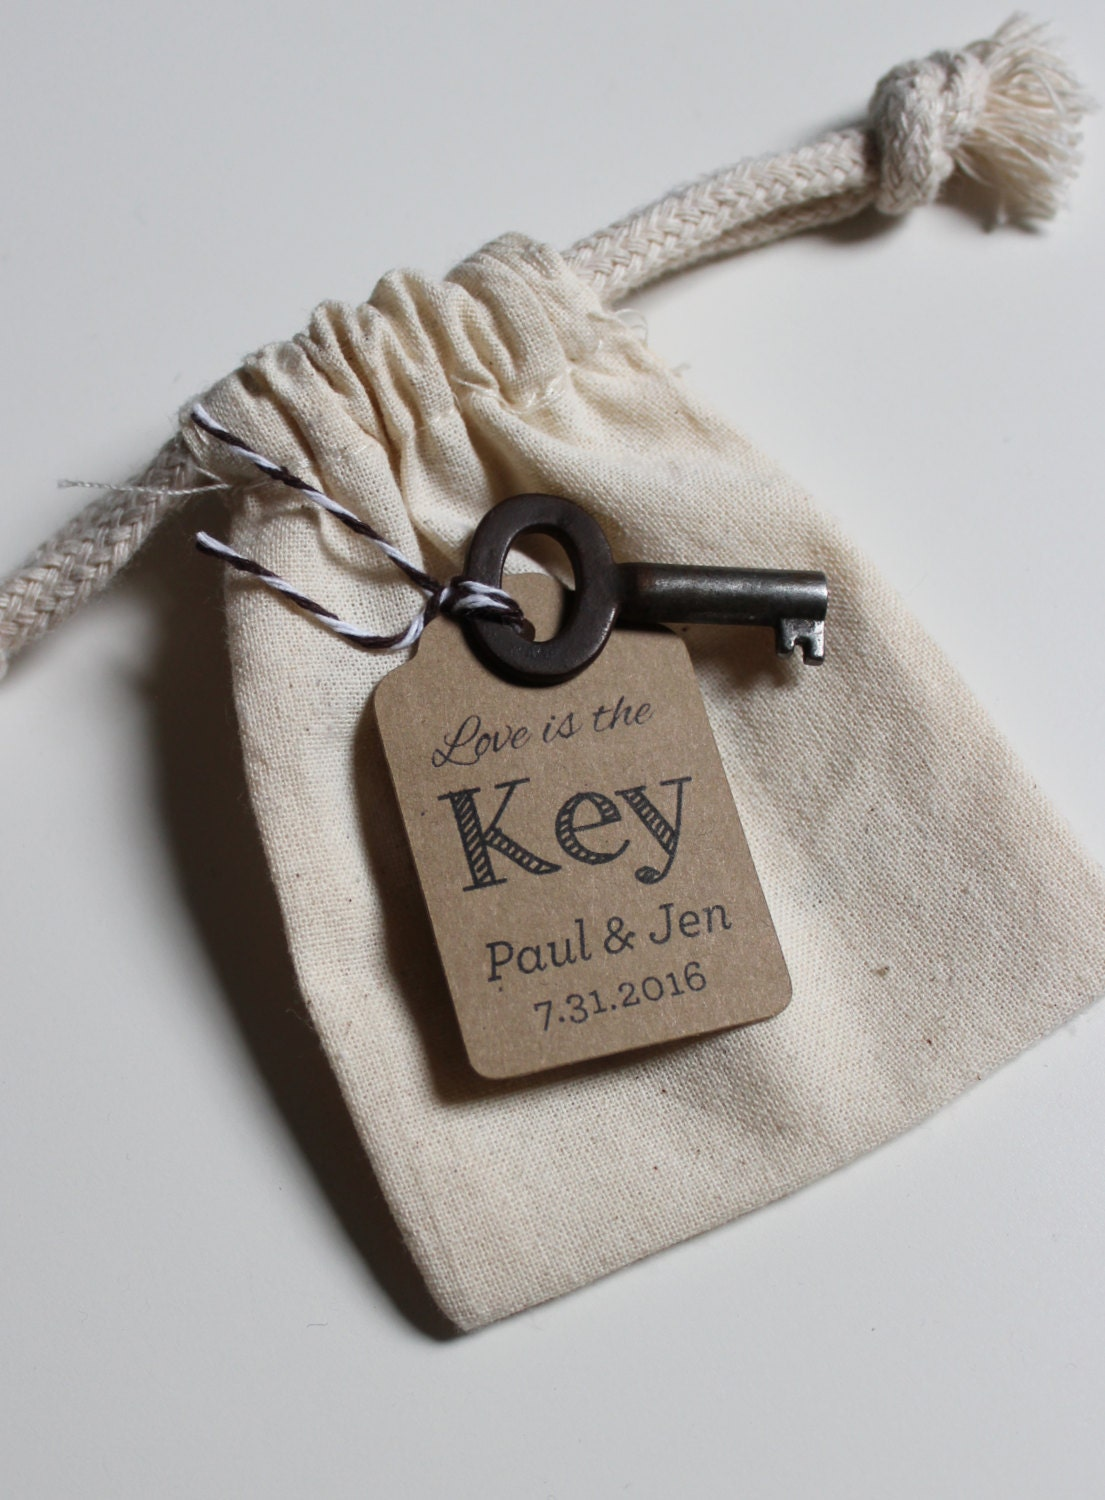 Wedding Favor Tags Uk : Favor Tags for Weddings Showers Gifts and Escort Cards Love